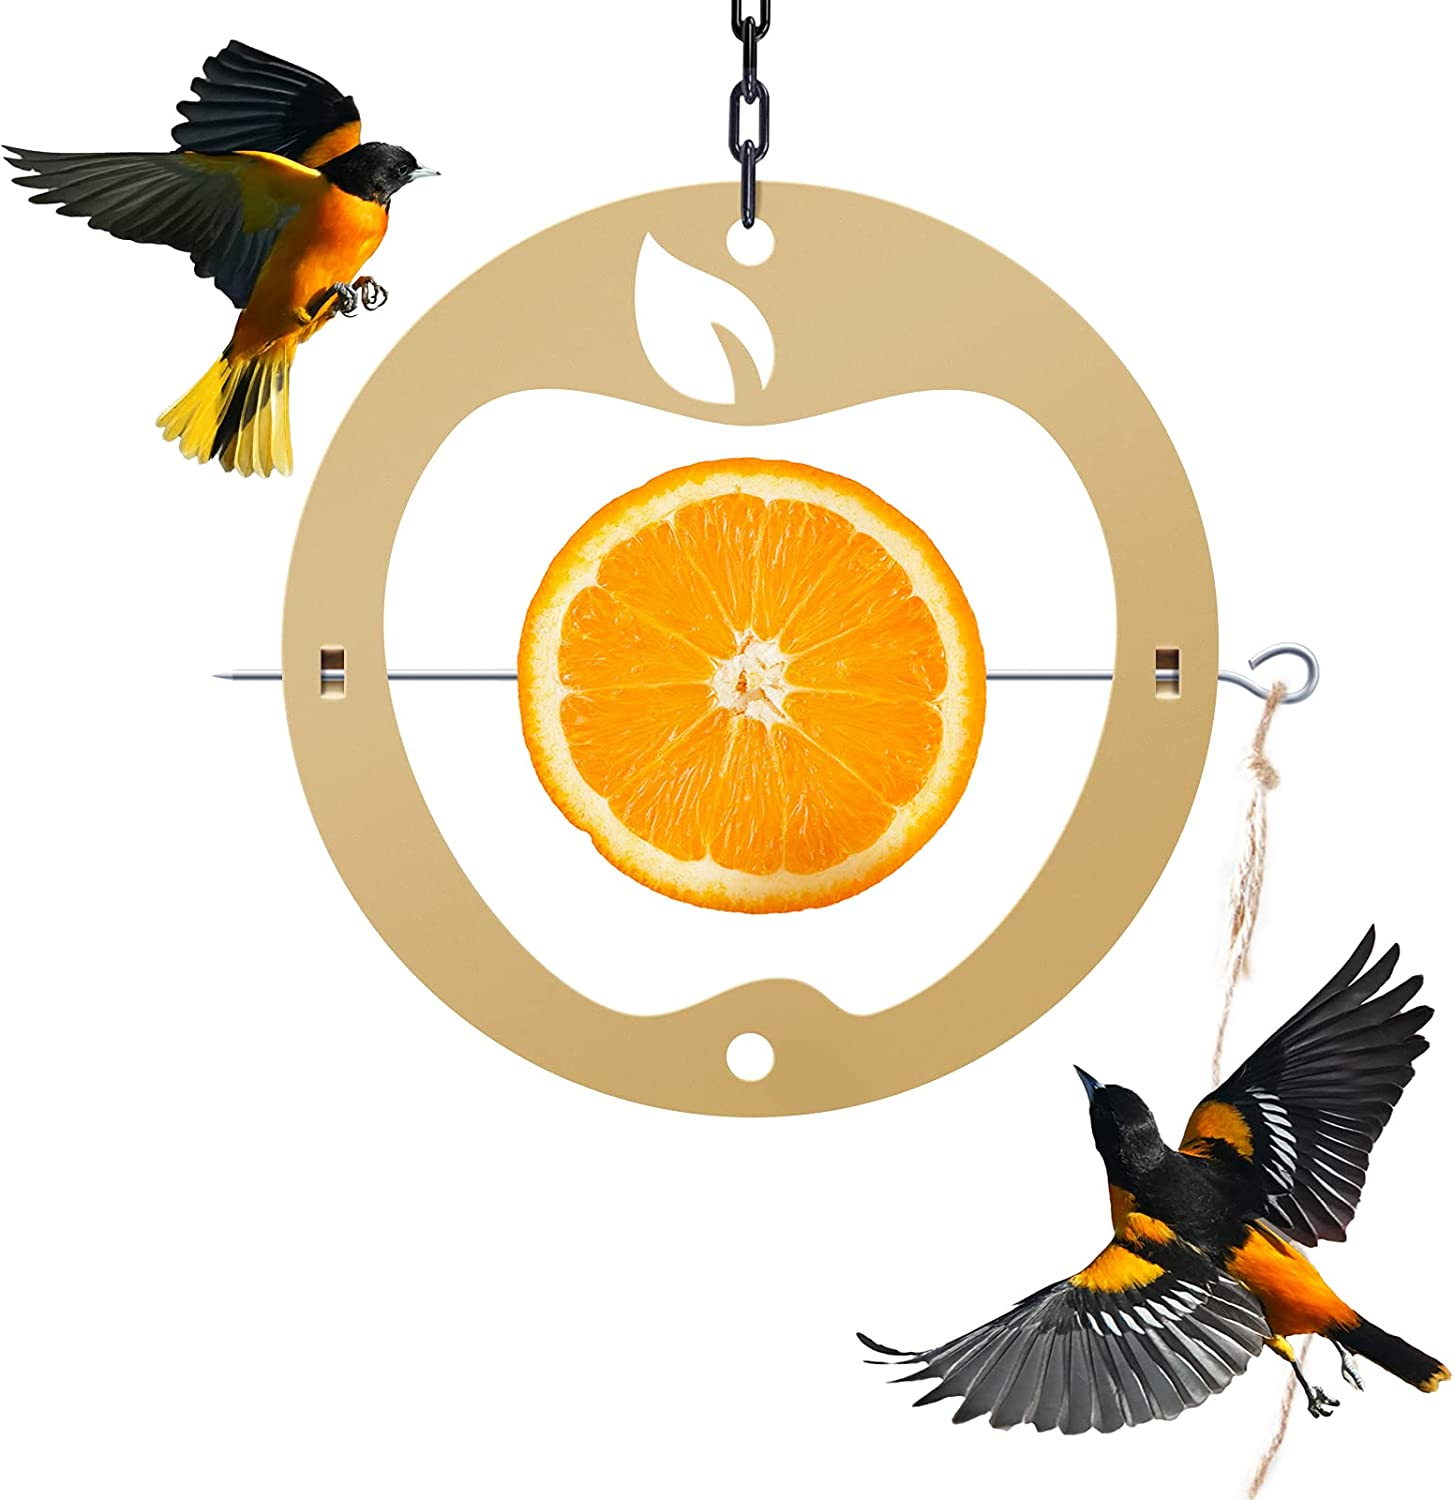 TopWoot Creative Oriole Bird Feeder for Outdoor Oranges, Bird Food Holder with Apple Shape for Bird Feeding, Hanging Chain & Spike Included, Perfect for Window, Balcony, Porch, Tree (Gold)